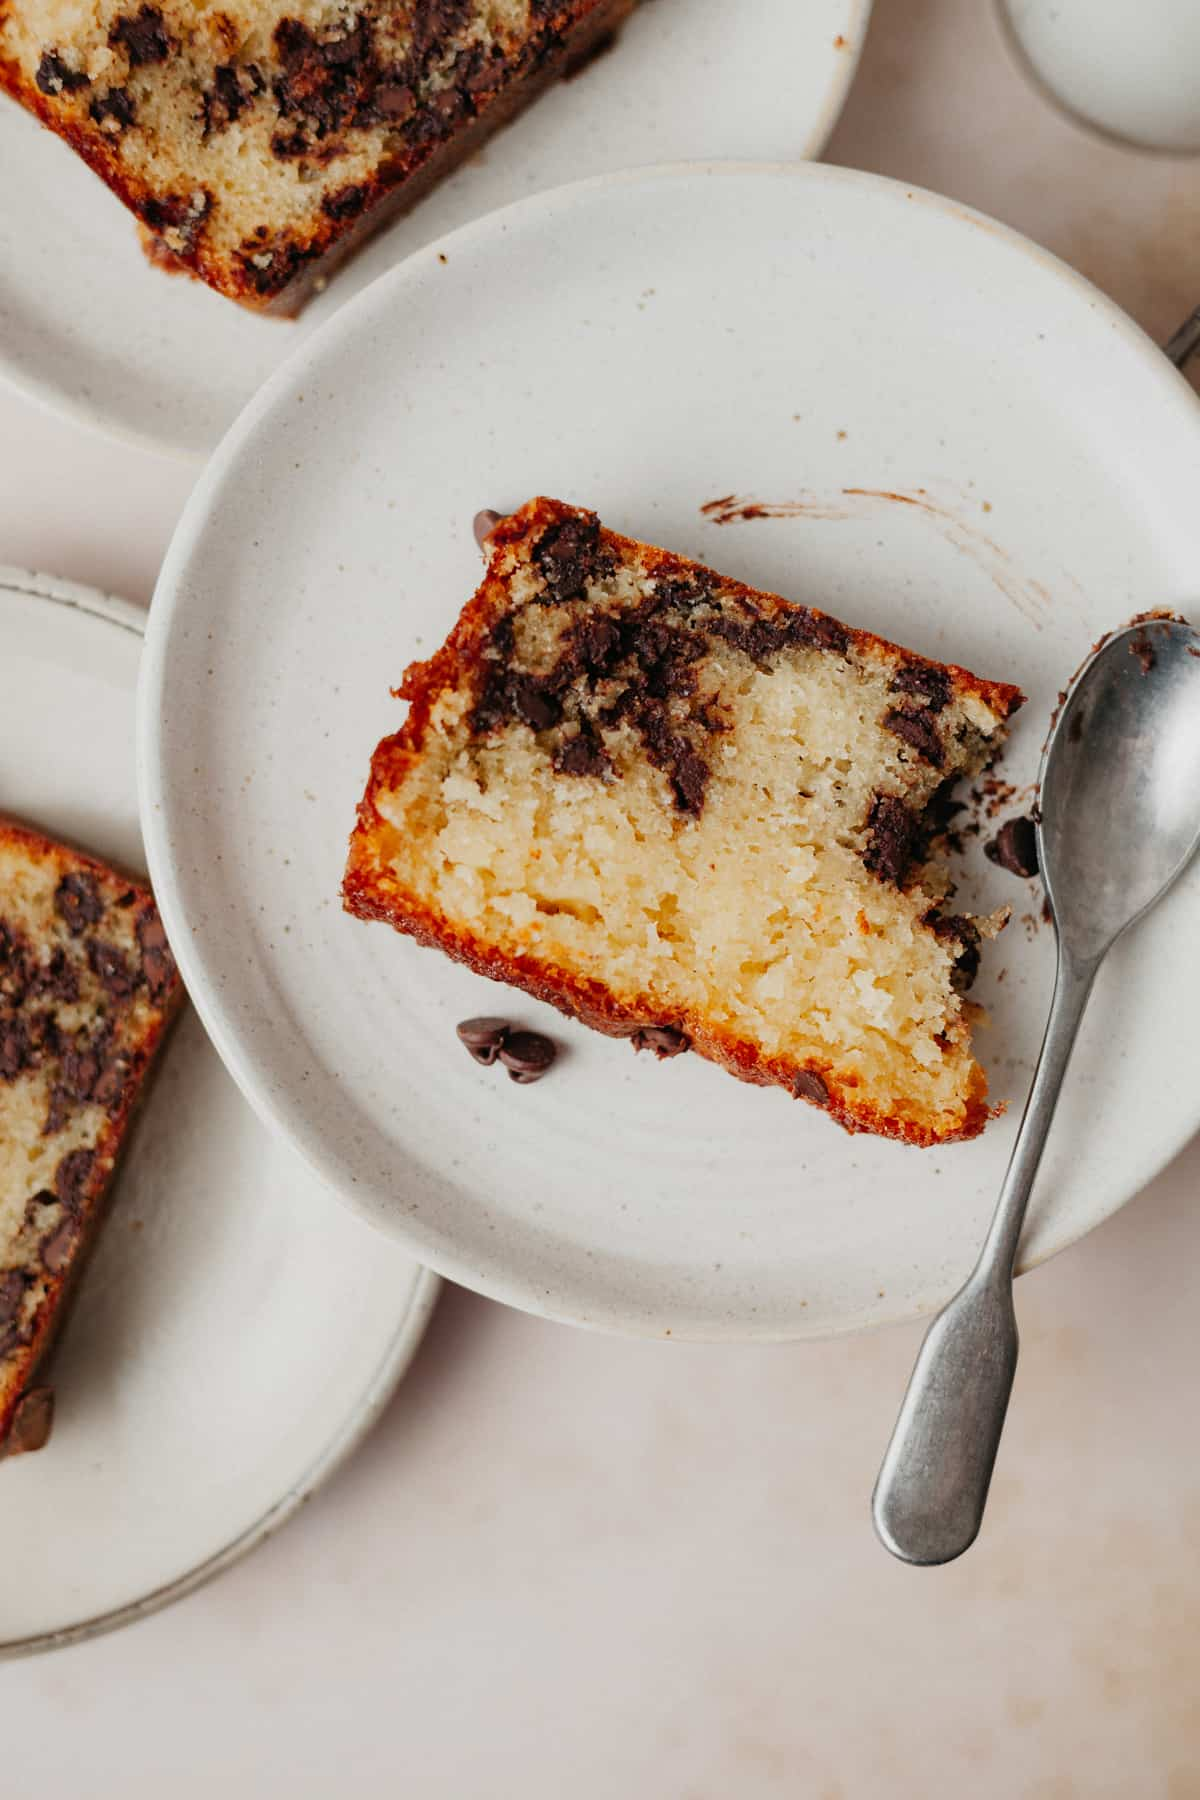 A slice of chocolate chip loaf on a small beige plate. There is a small silver spoon